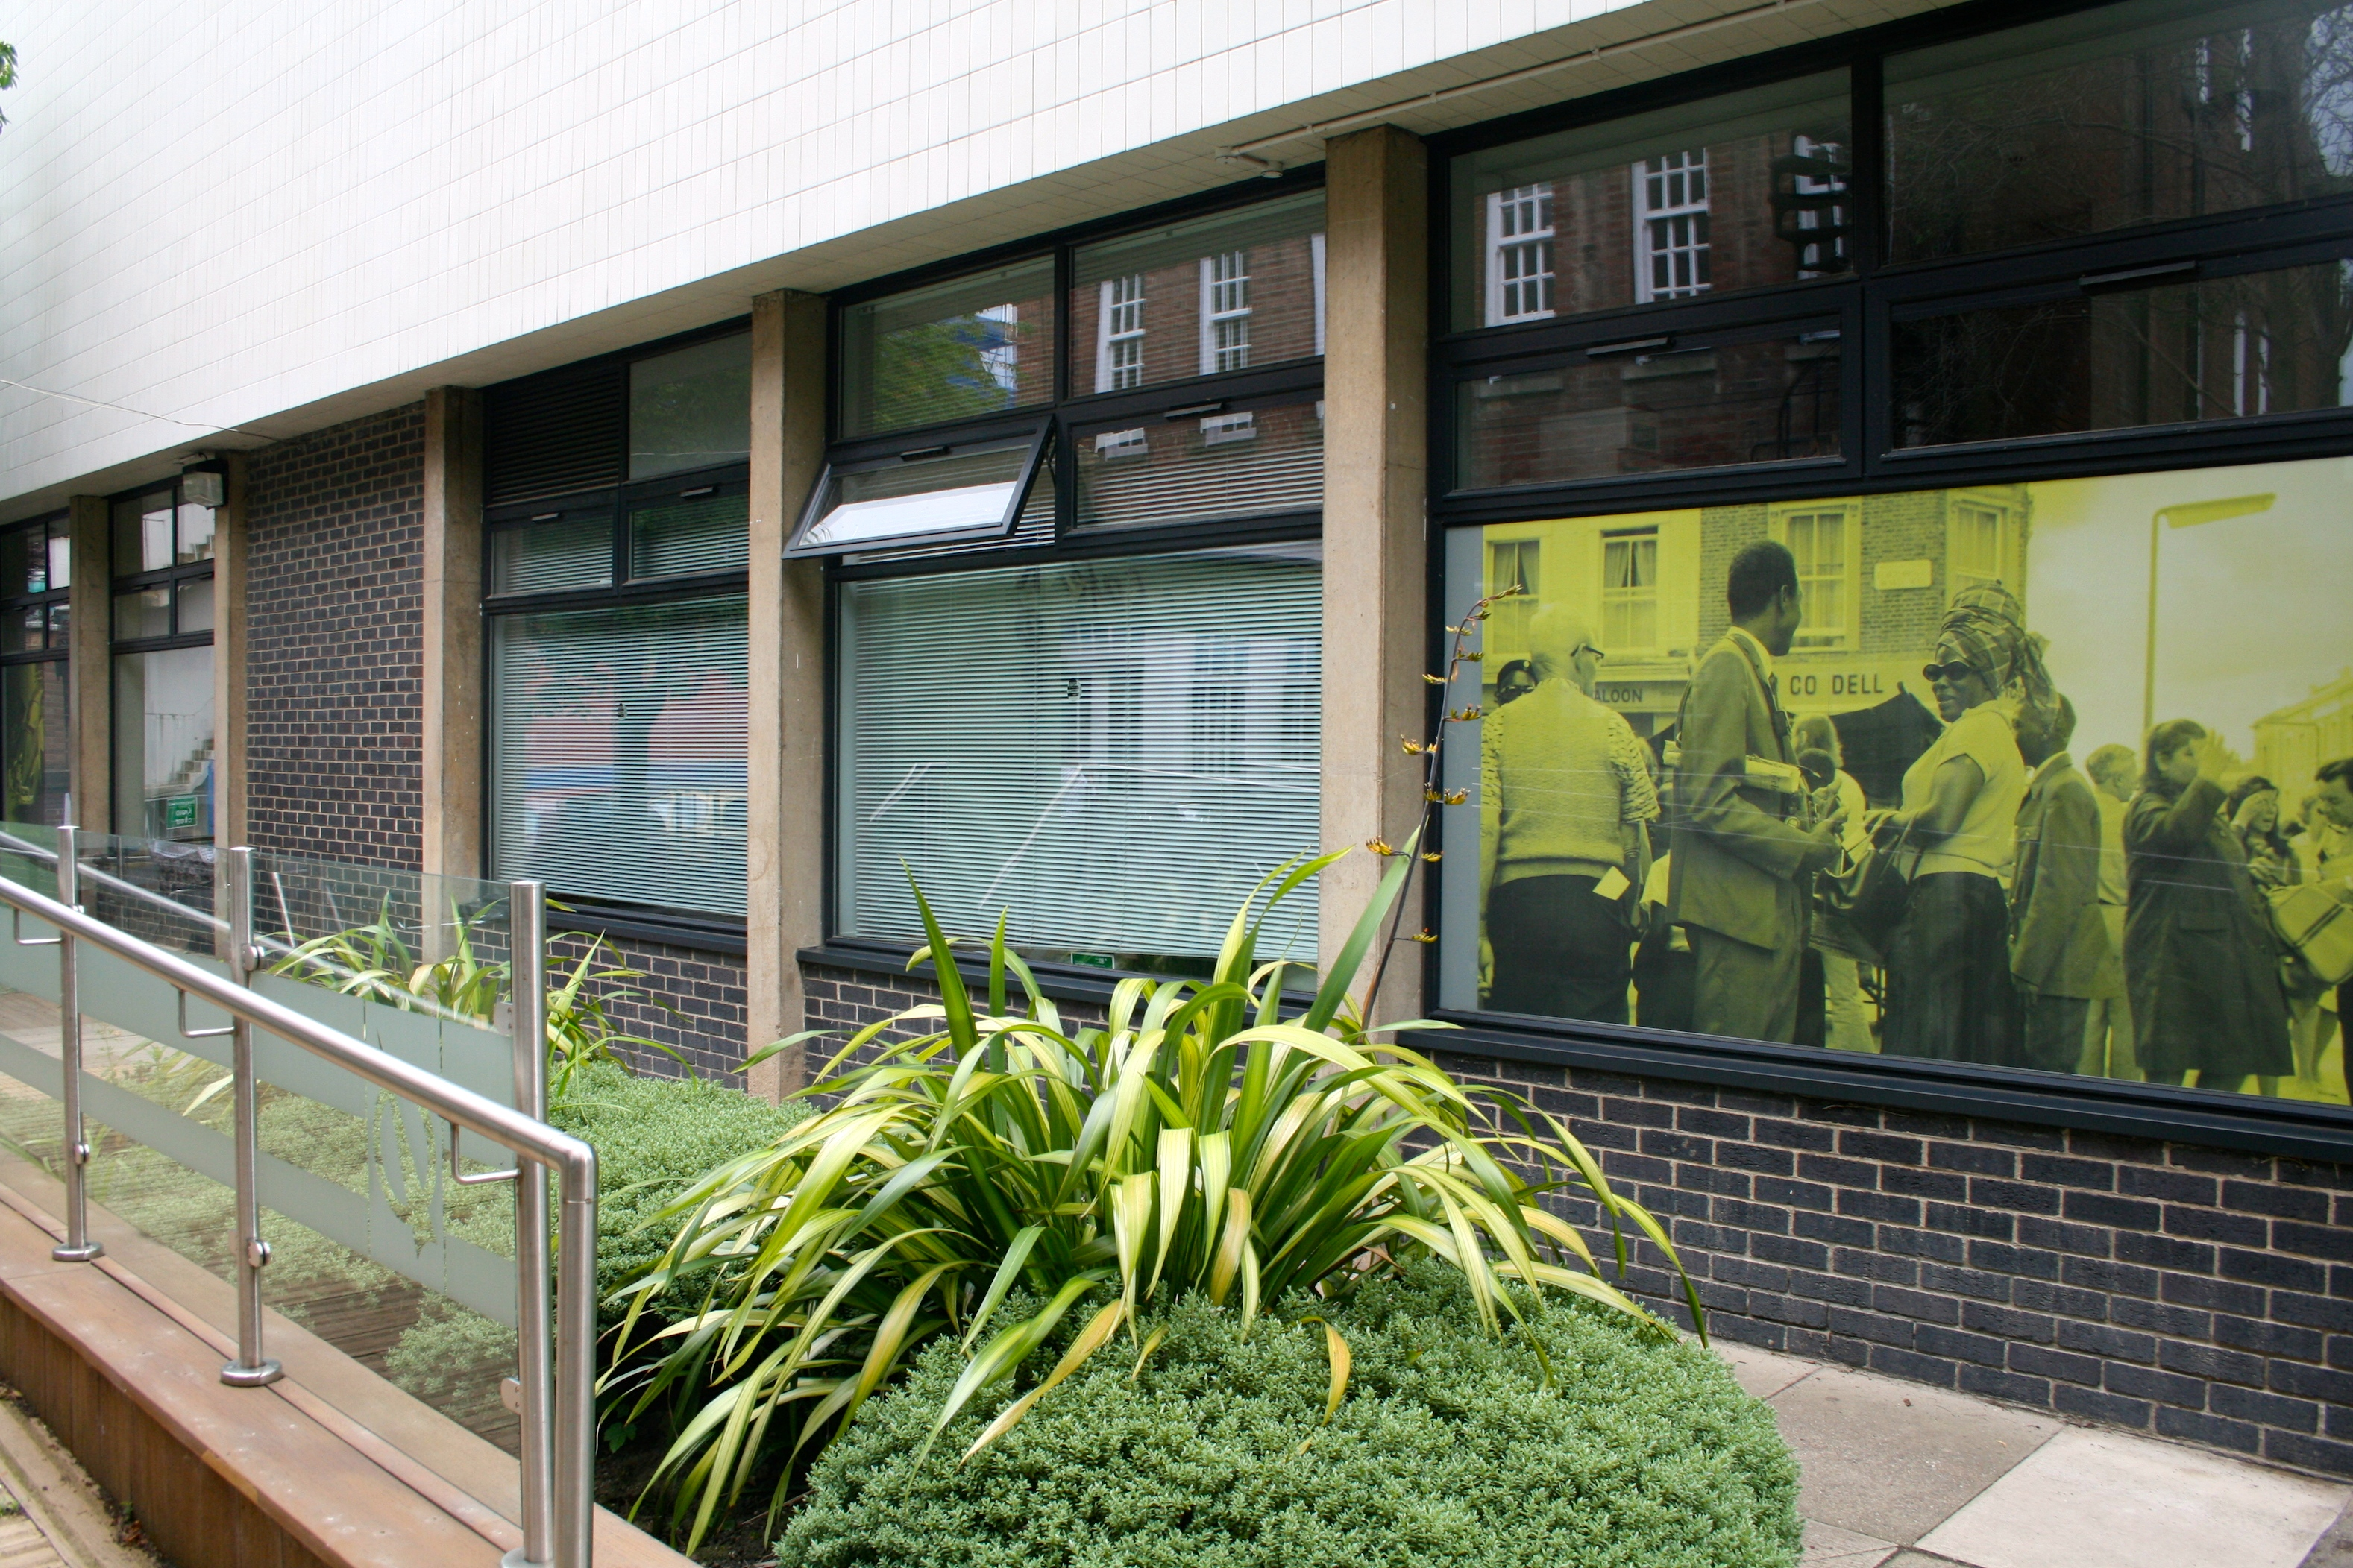 Photograph of the Museum Studies building with one of the 100 Images printed onto one of the windows